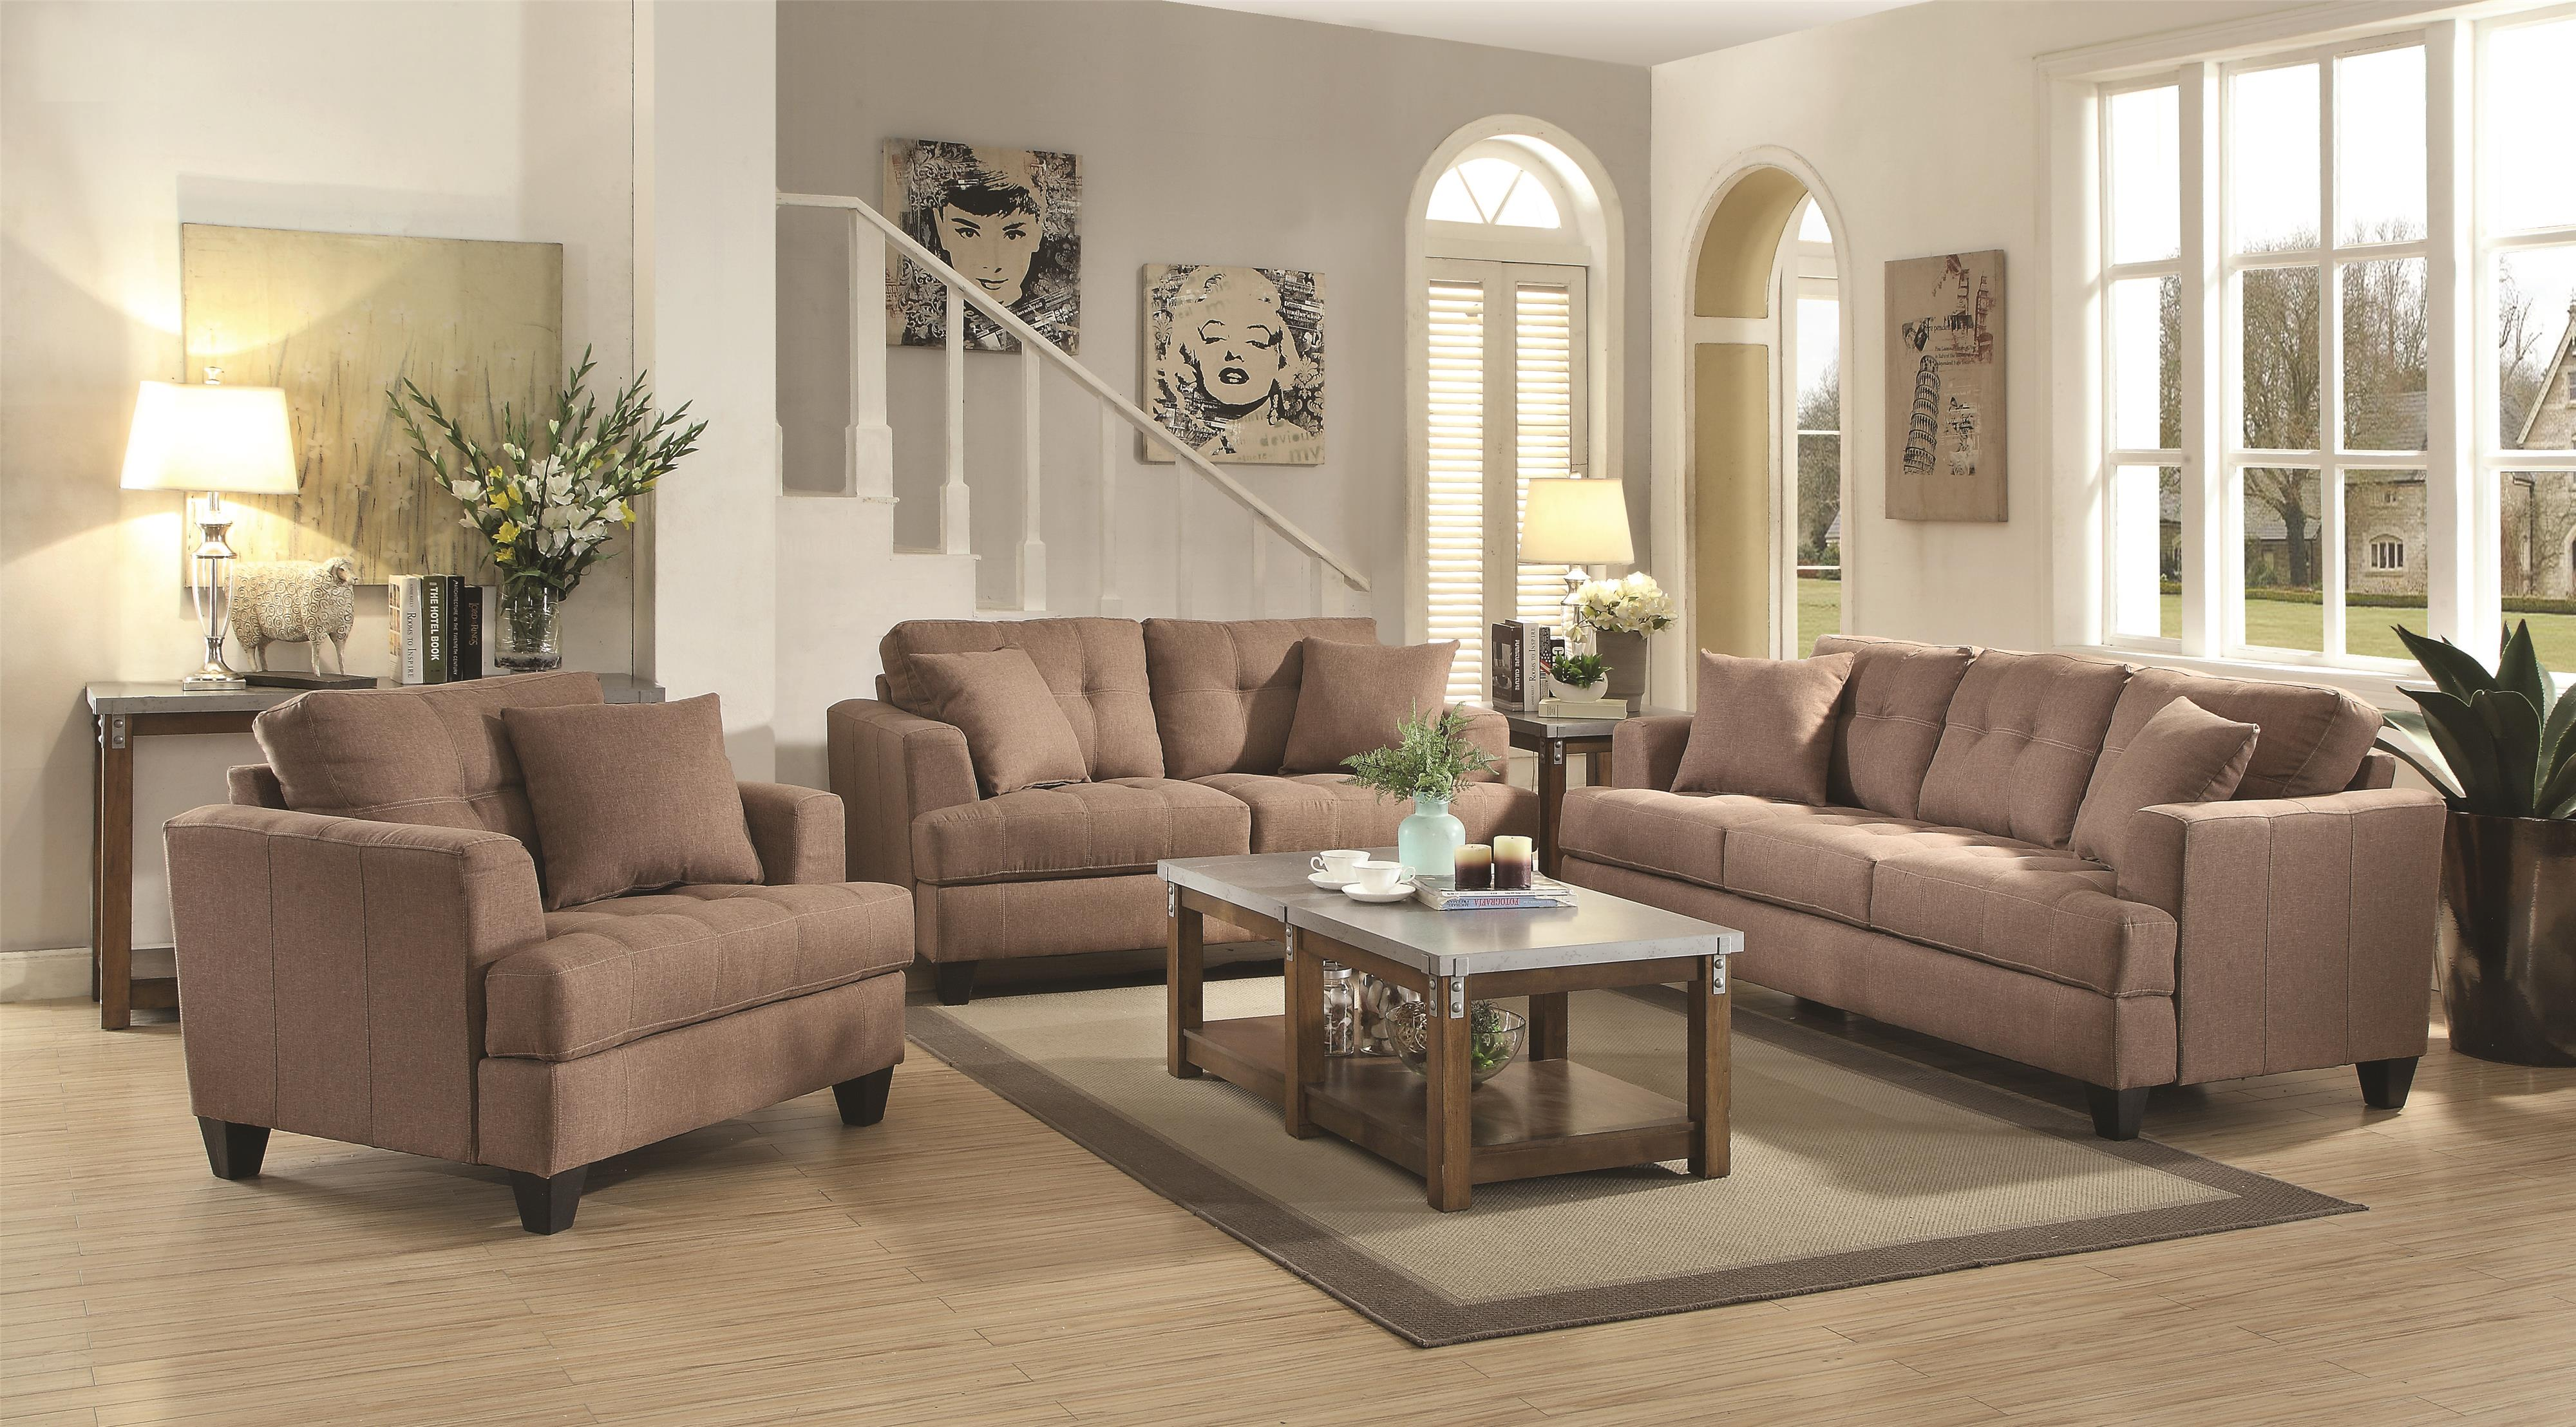 Coaster Samuel Sofa Stationary Living Room Group - Item Number: 505171 Living Room Group 1